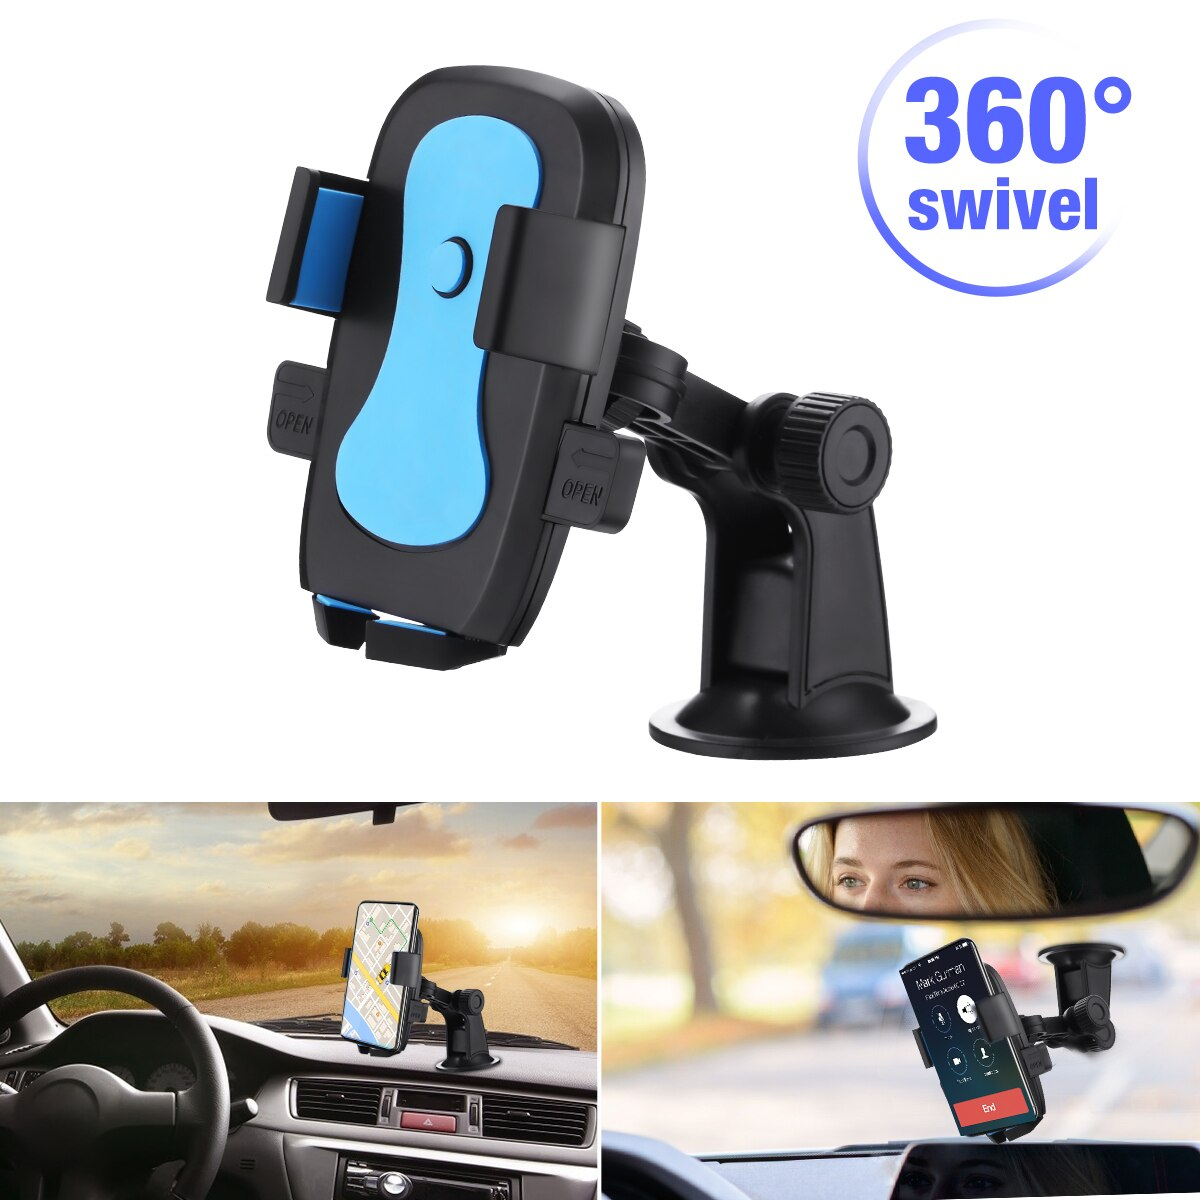 H6e9242d5e91c4990a404c2c48f7441f0P - 360 Degree Rotatable Car Phone Holder For 2.4 to 3.4inch Phone Mount Stand in Car Bracket For Poco x3 pro iPhone Xiaomi Samsung